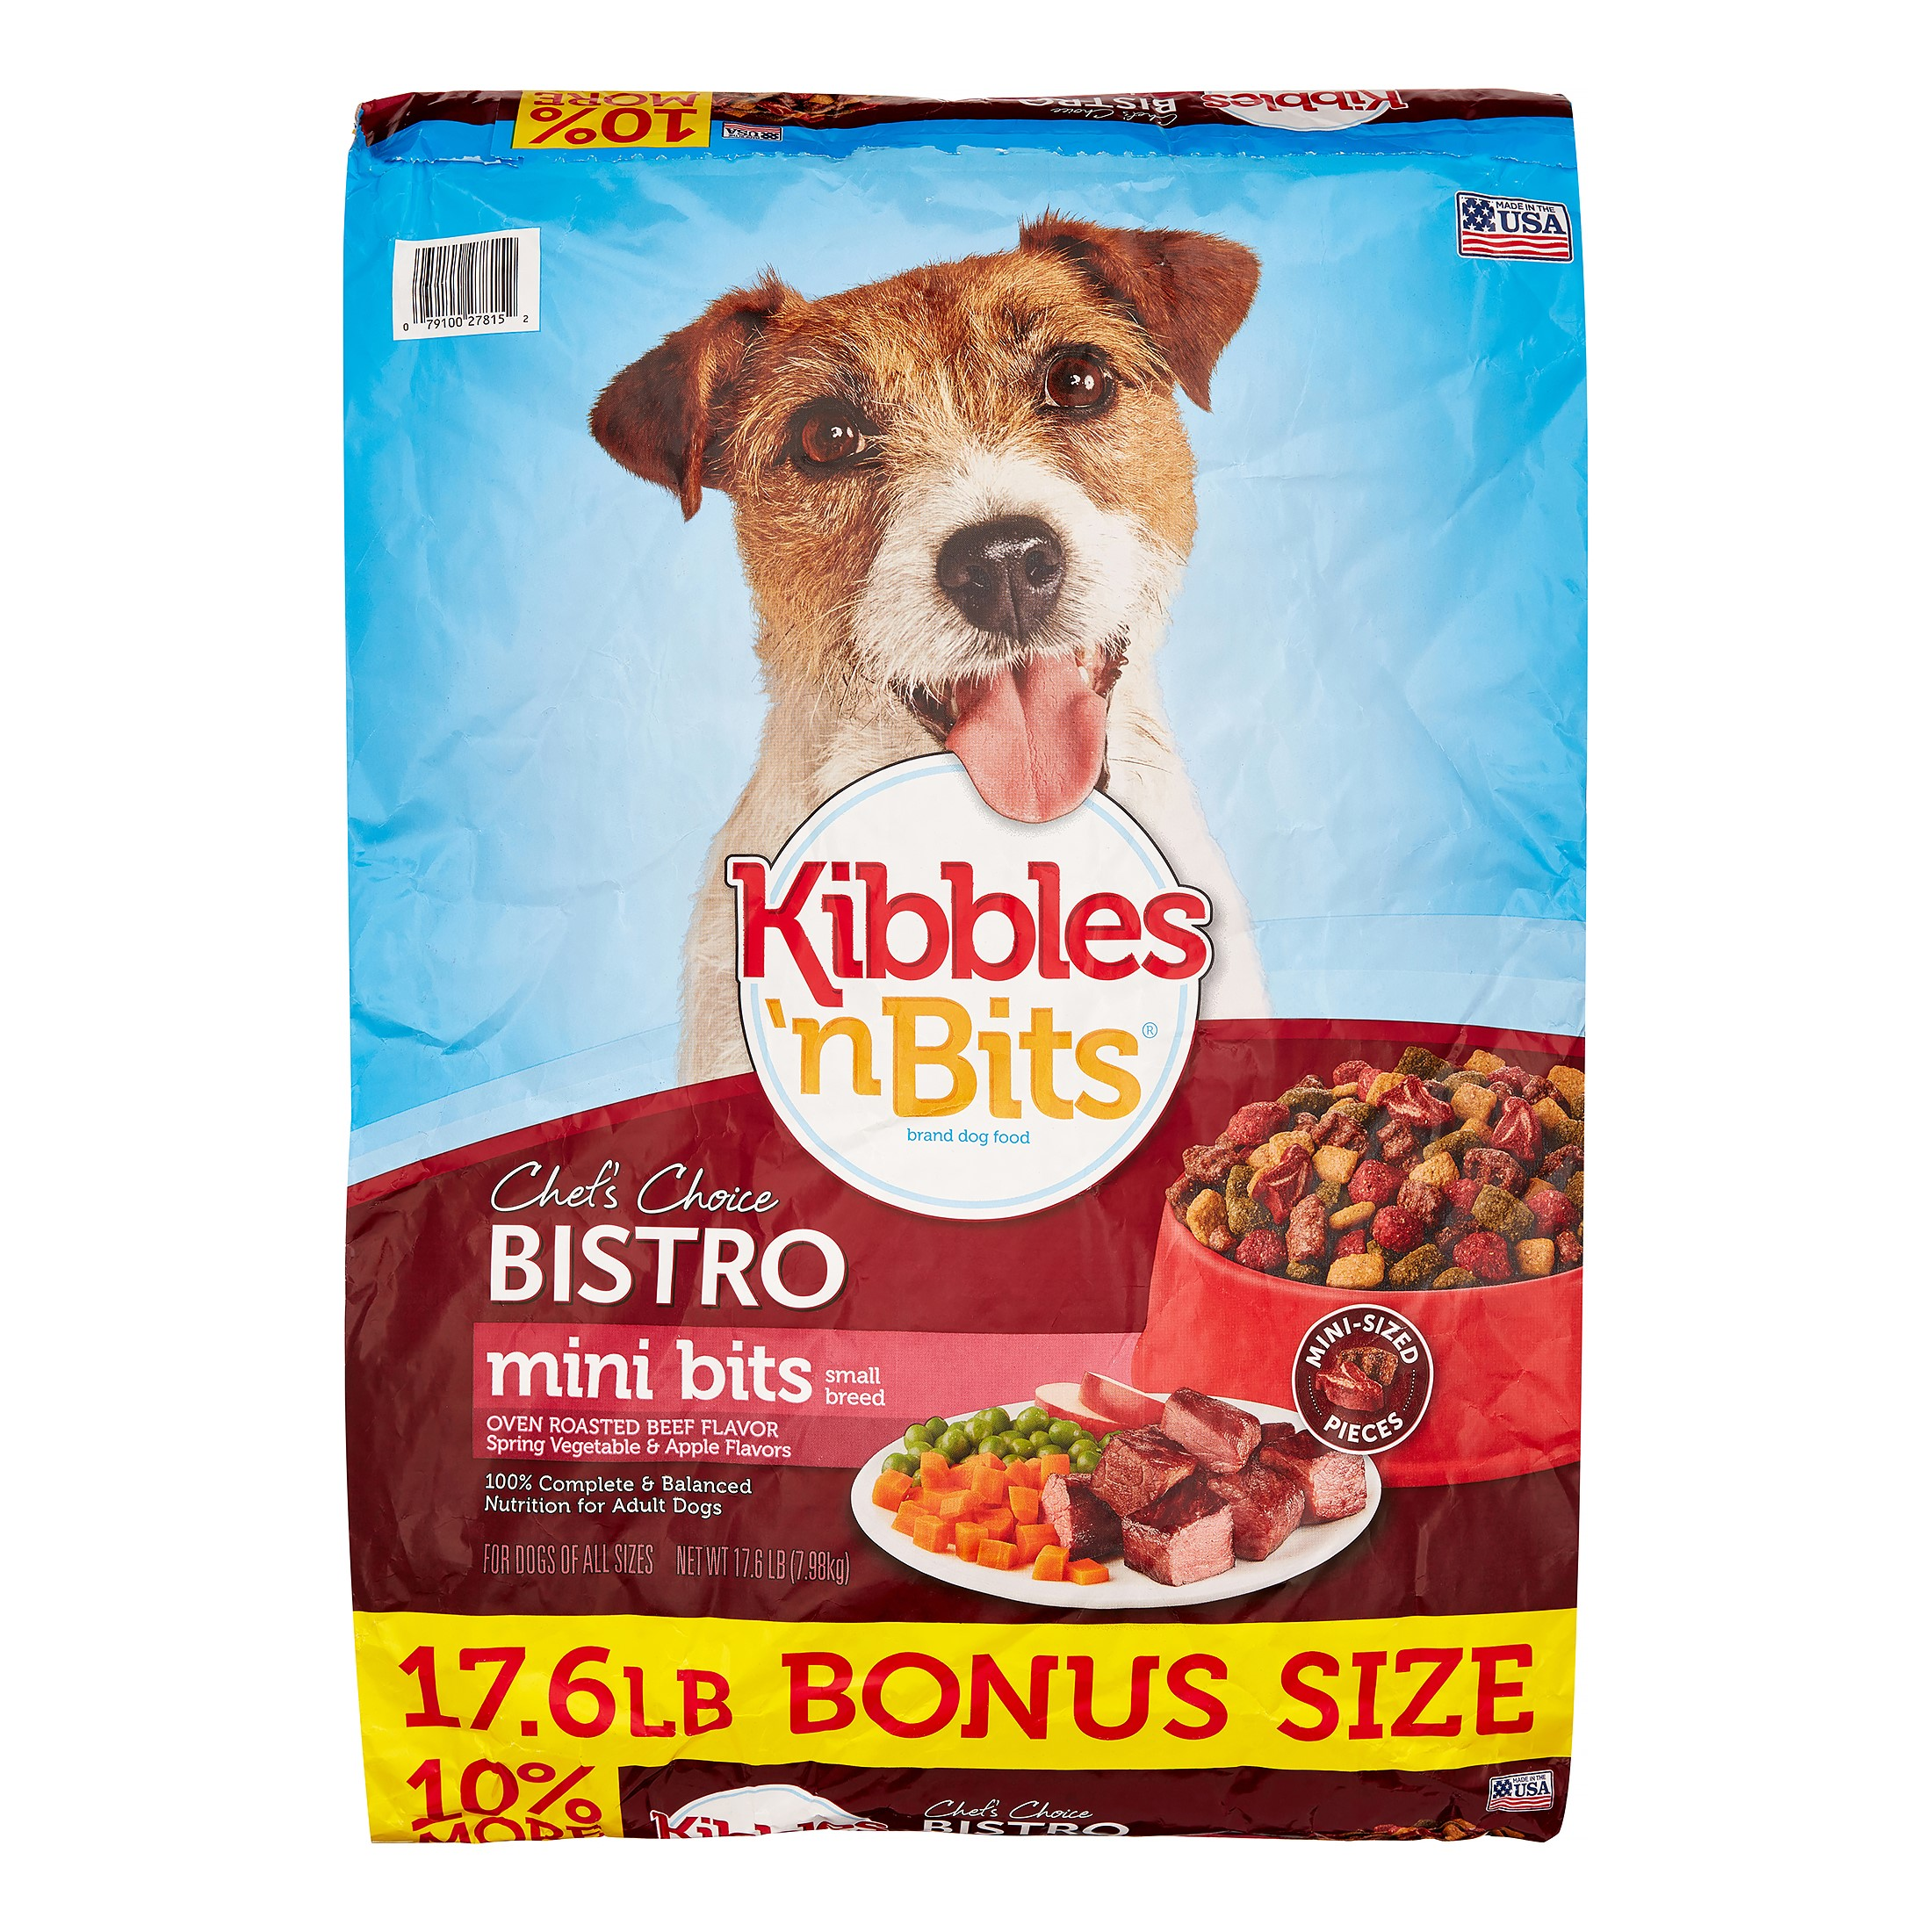 Kibbles 'n Bits Bistro Mini Bits Oven Roasted Beef, Vegetable & Apple Small Breed Bonus Bag Dry Dog Food, 17.6 Lb